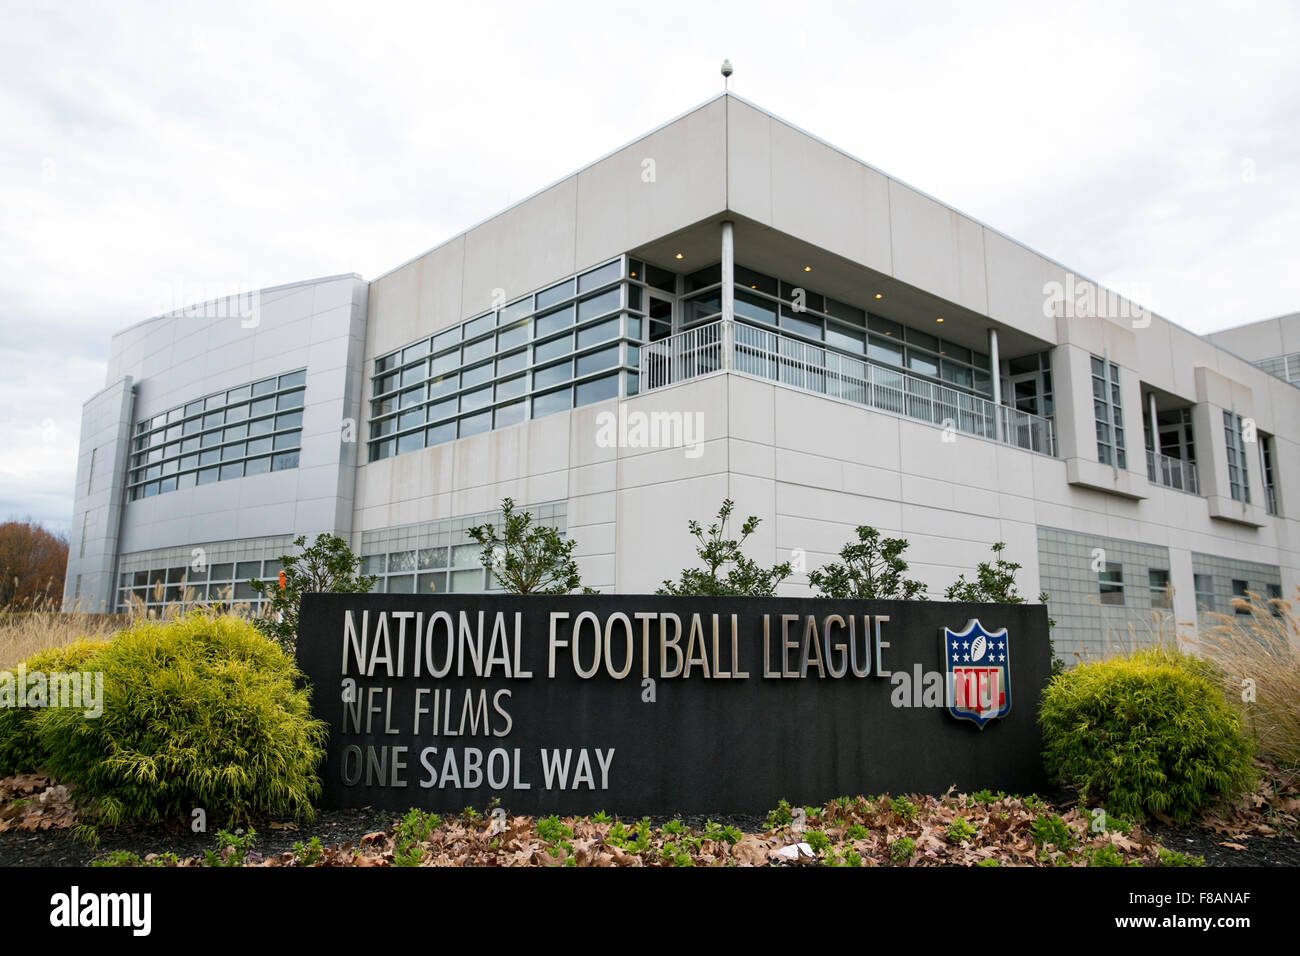 A logo sign outside of the headquarters of NFL Films in Mount Laurel, New Jersey on November 22, 2015. - Stock Image